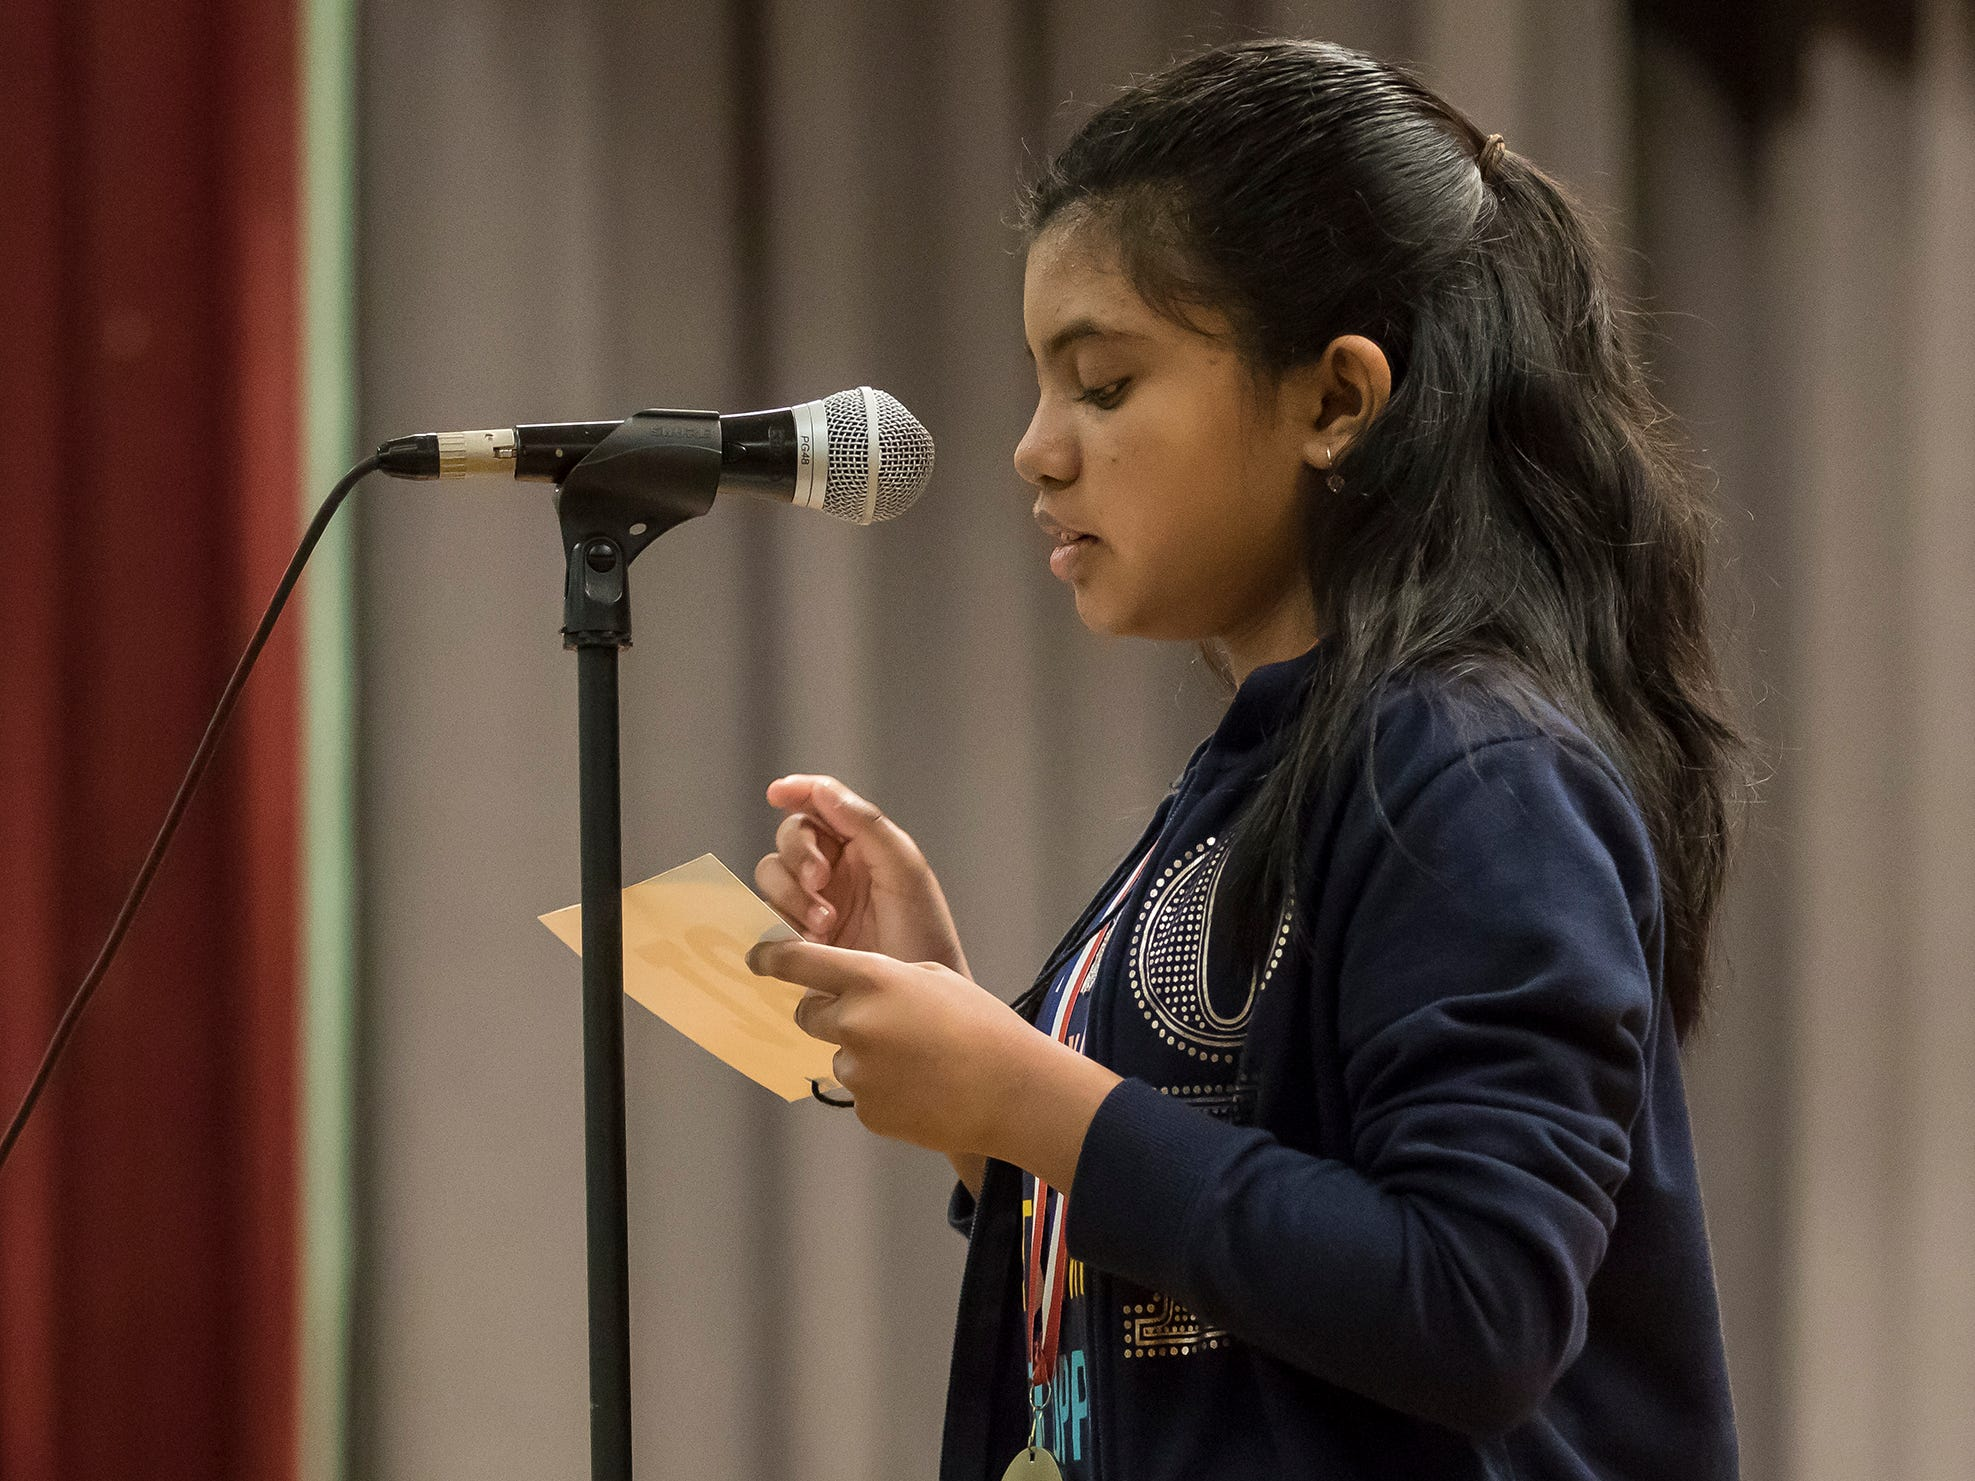 The 2019 All-Parish Spelling Bee was held at Ouachita Junior High in Monroe, La. on March 1. Bre'Ann Washington won the bee and will go on to compete at nationals in Maryland on May 26.